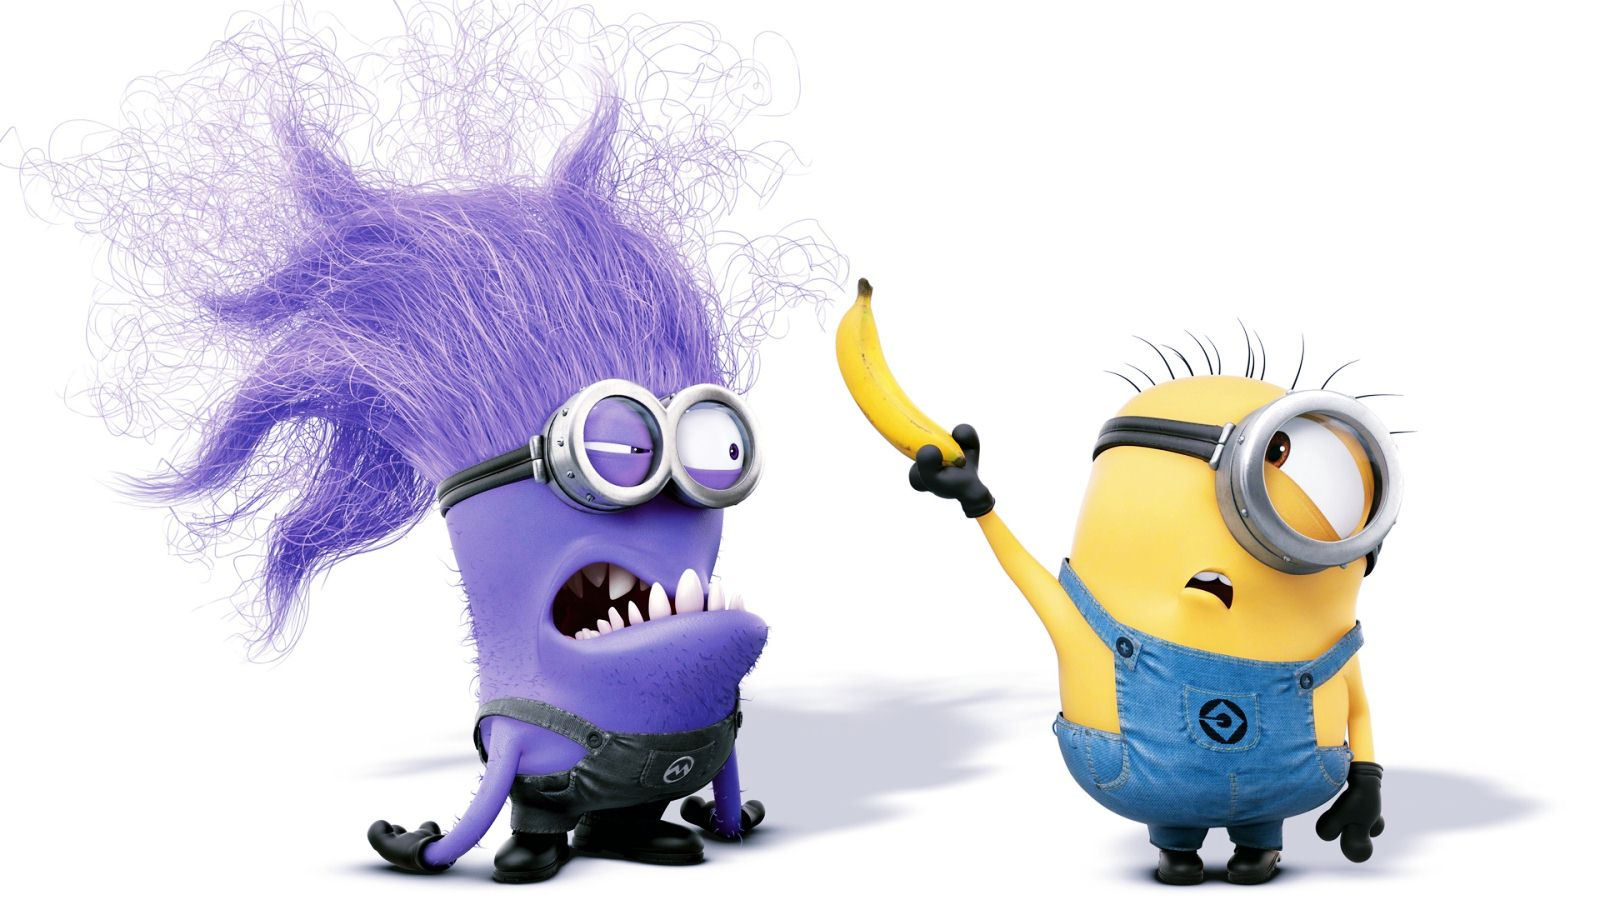 Cartoon District Wallpapers 55 Cute Minion Wallpapers HD for Desktop 1600x900